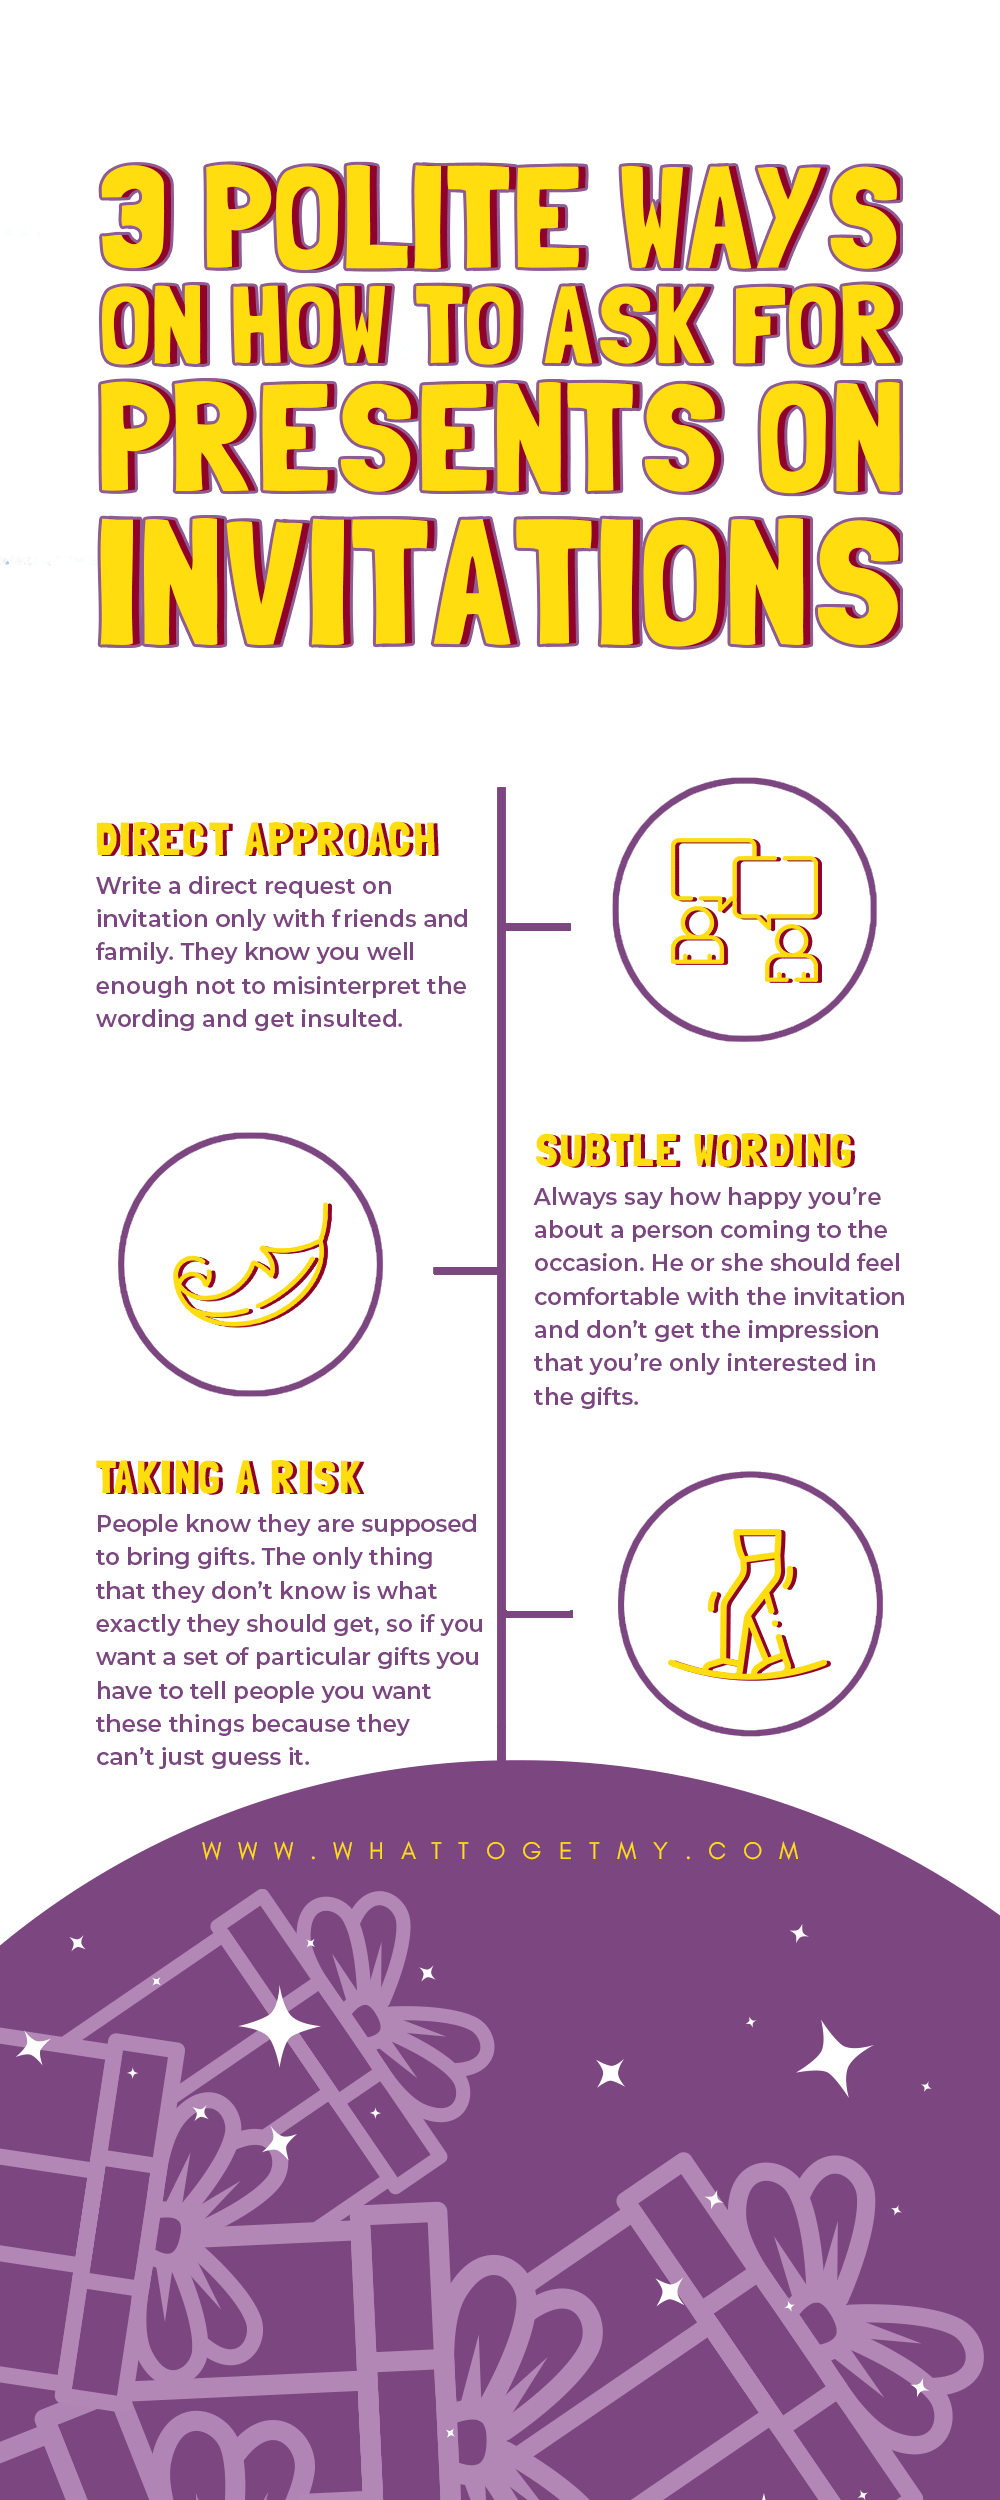 Infographic 3 Polite Ways on How to Ask for Presents on Invitations